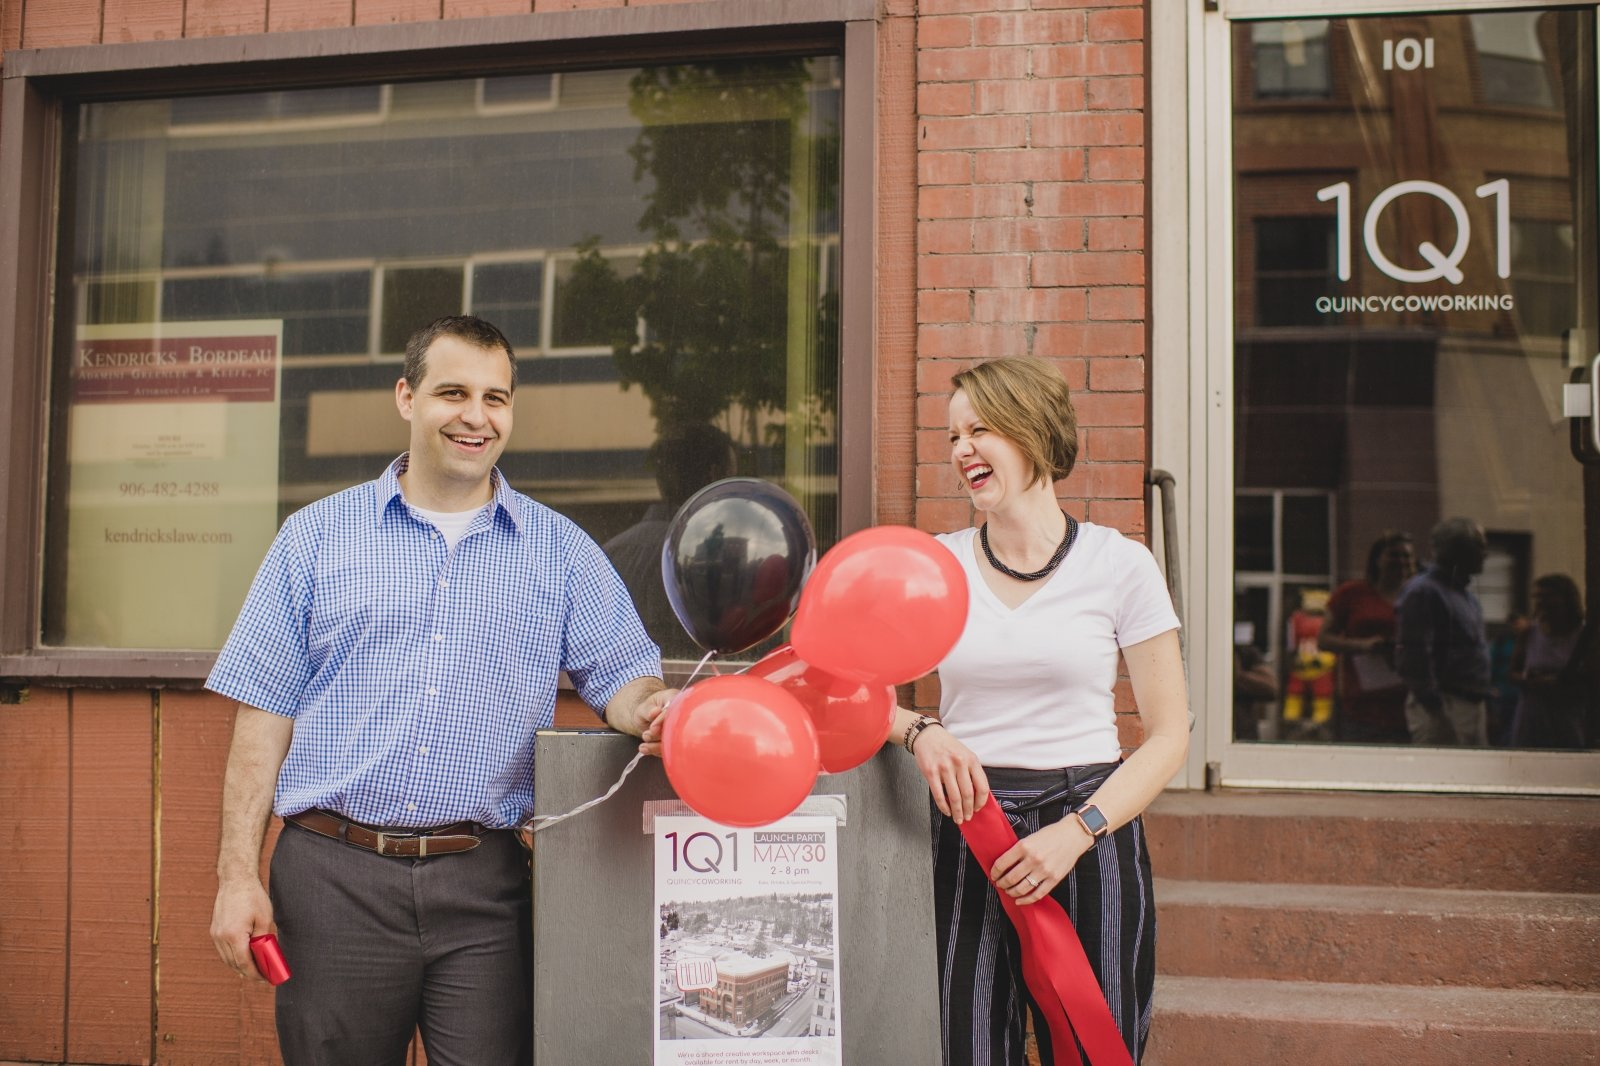 A man and a woman smile while standing next to a sign that reads 1Q1 launch party. There are balloons and each hold a ribbon.